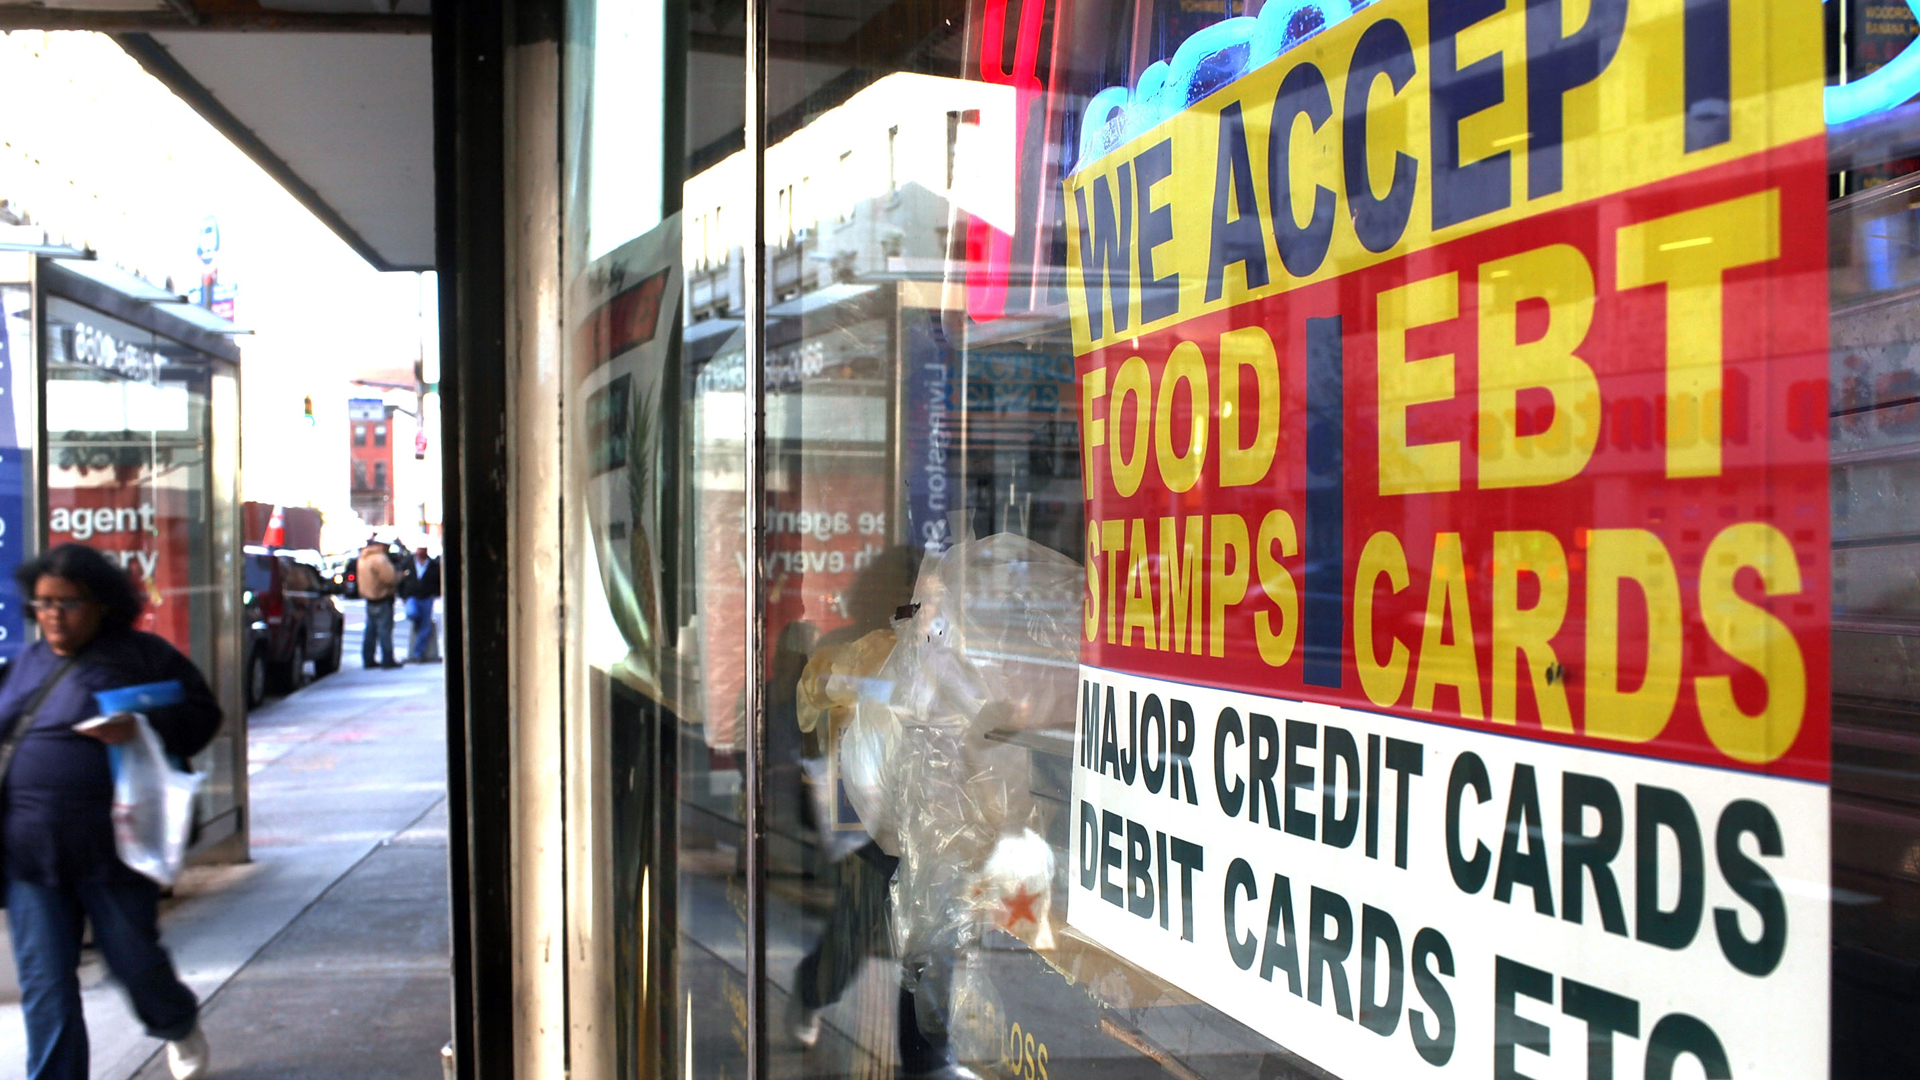 A sign in a market window advertises the acceptance of food stamps on October 7, 2010 in New York City. (Credit: Spencer Platt/Getty Images)